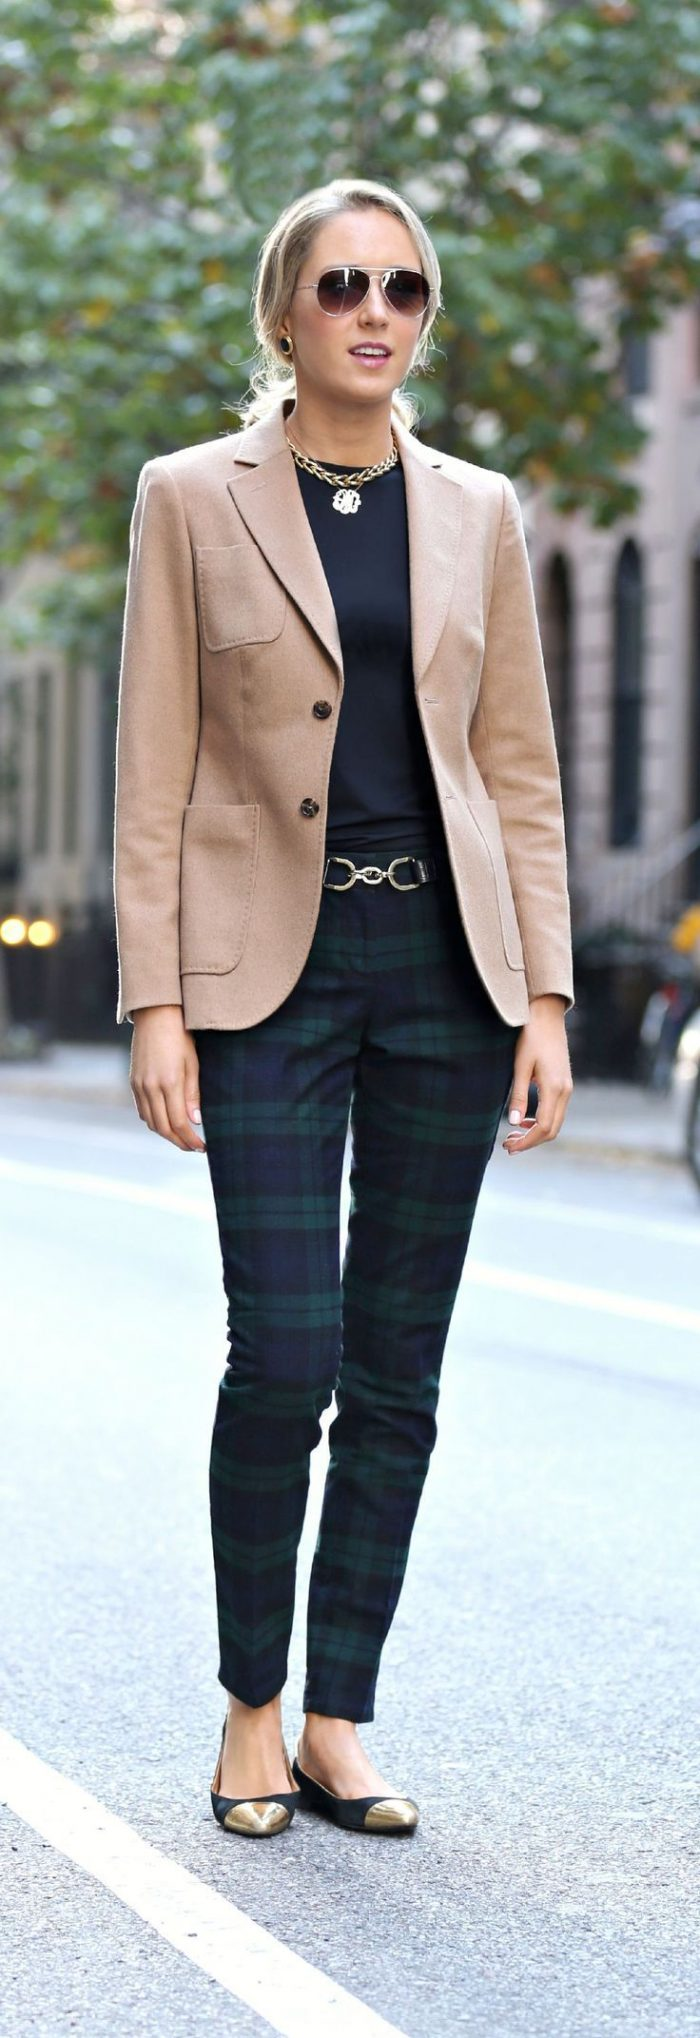 Job Interview Outfits For Women 2019